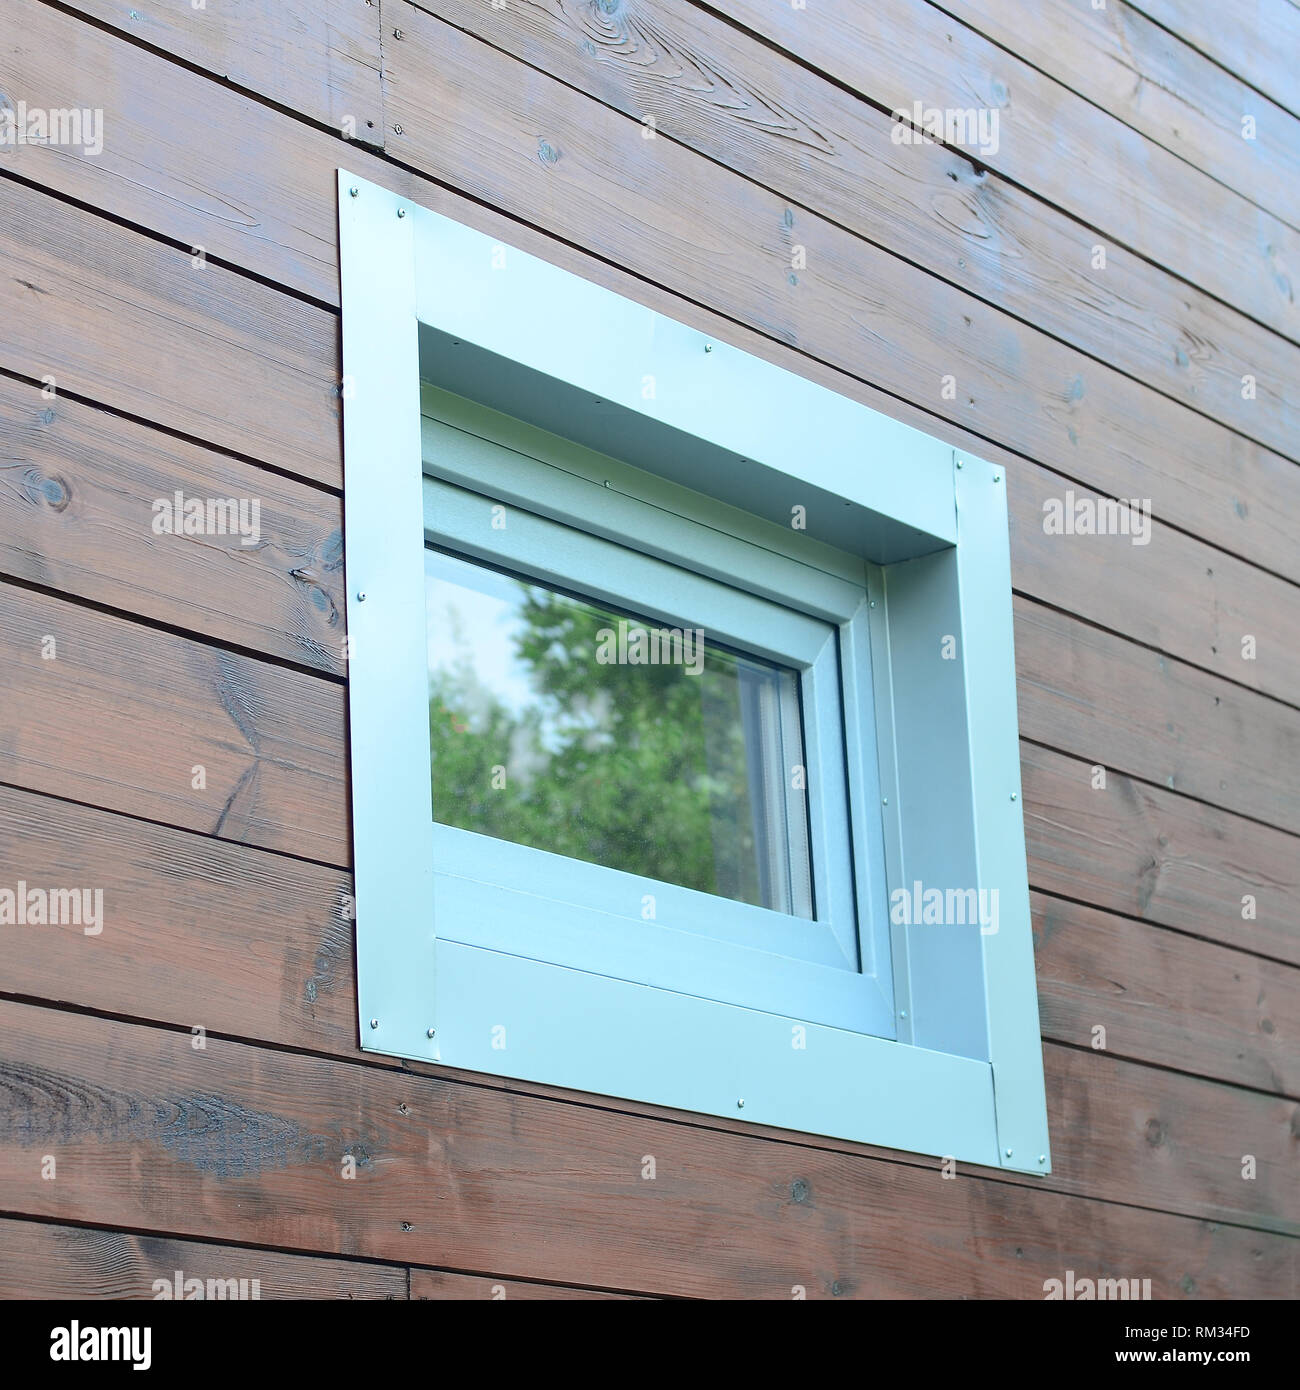 Plastic PVC window in modern passive wooden house facade wall. PVC windows are the number one in house energy efficiency - Stock Image